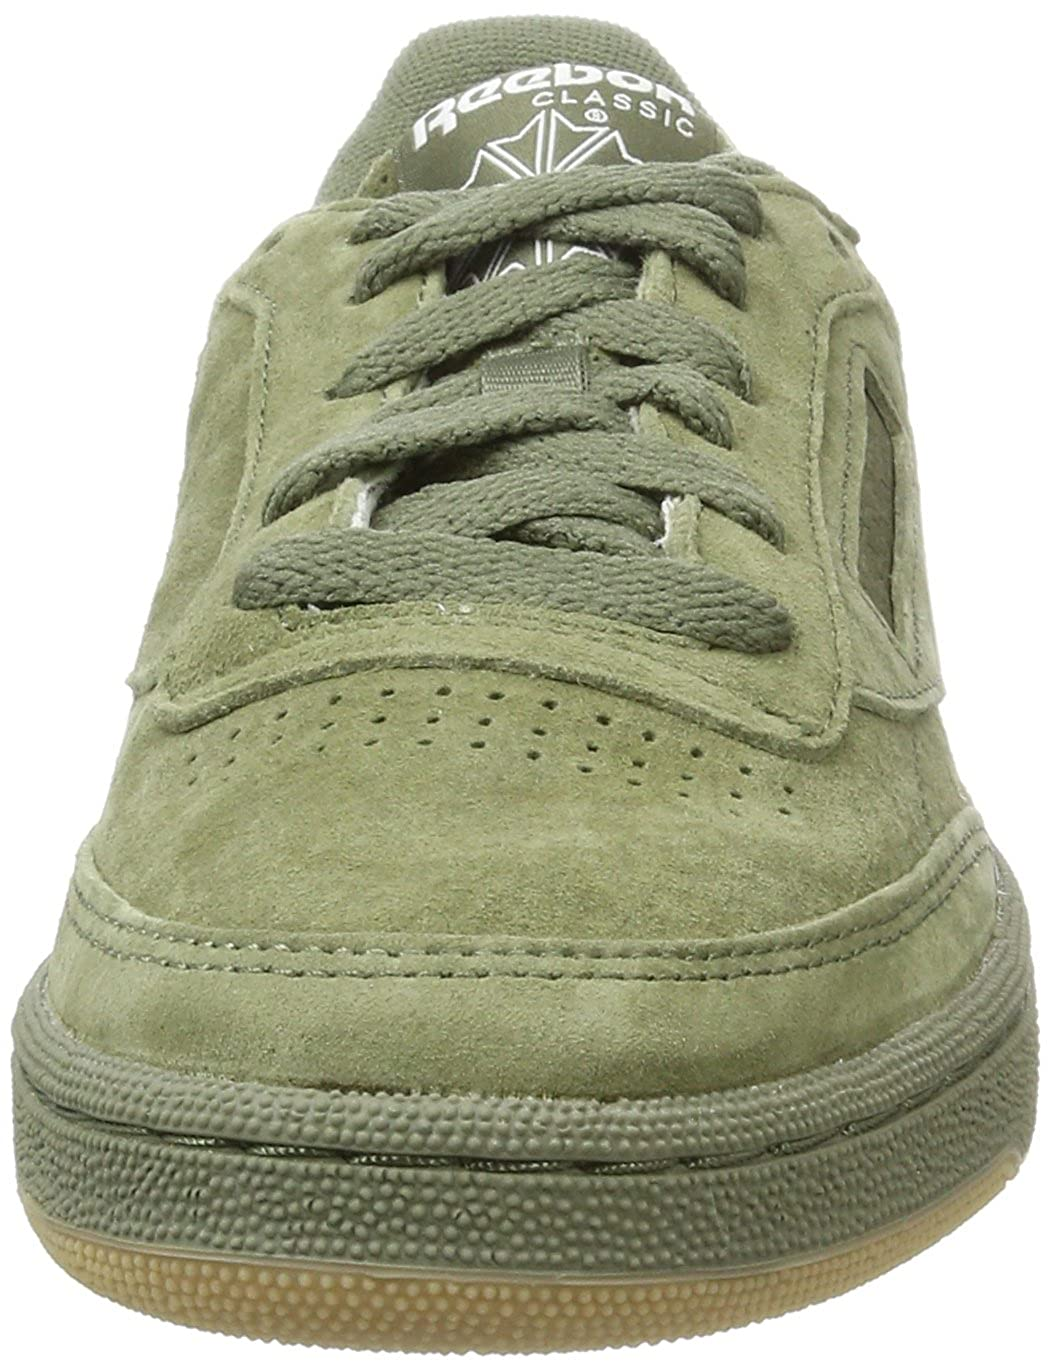 12495f505a965 Reebok Men s Club C 85 Sg Hunter Green White-Gum Leather Tennis Shoes - 11  UK India (45.5 EU) (12 US)  Buy Online at Low Prices in India - Amazon.in